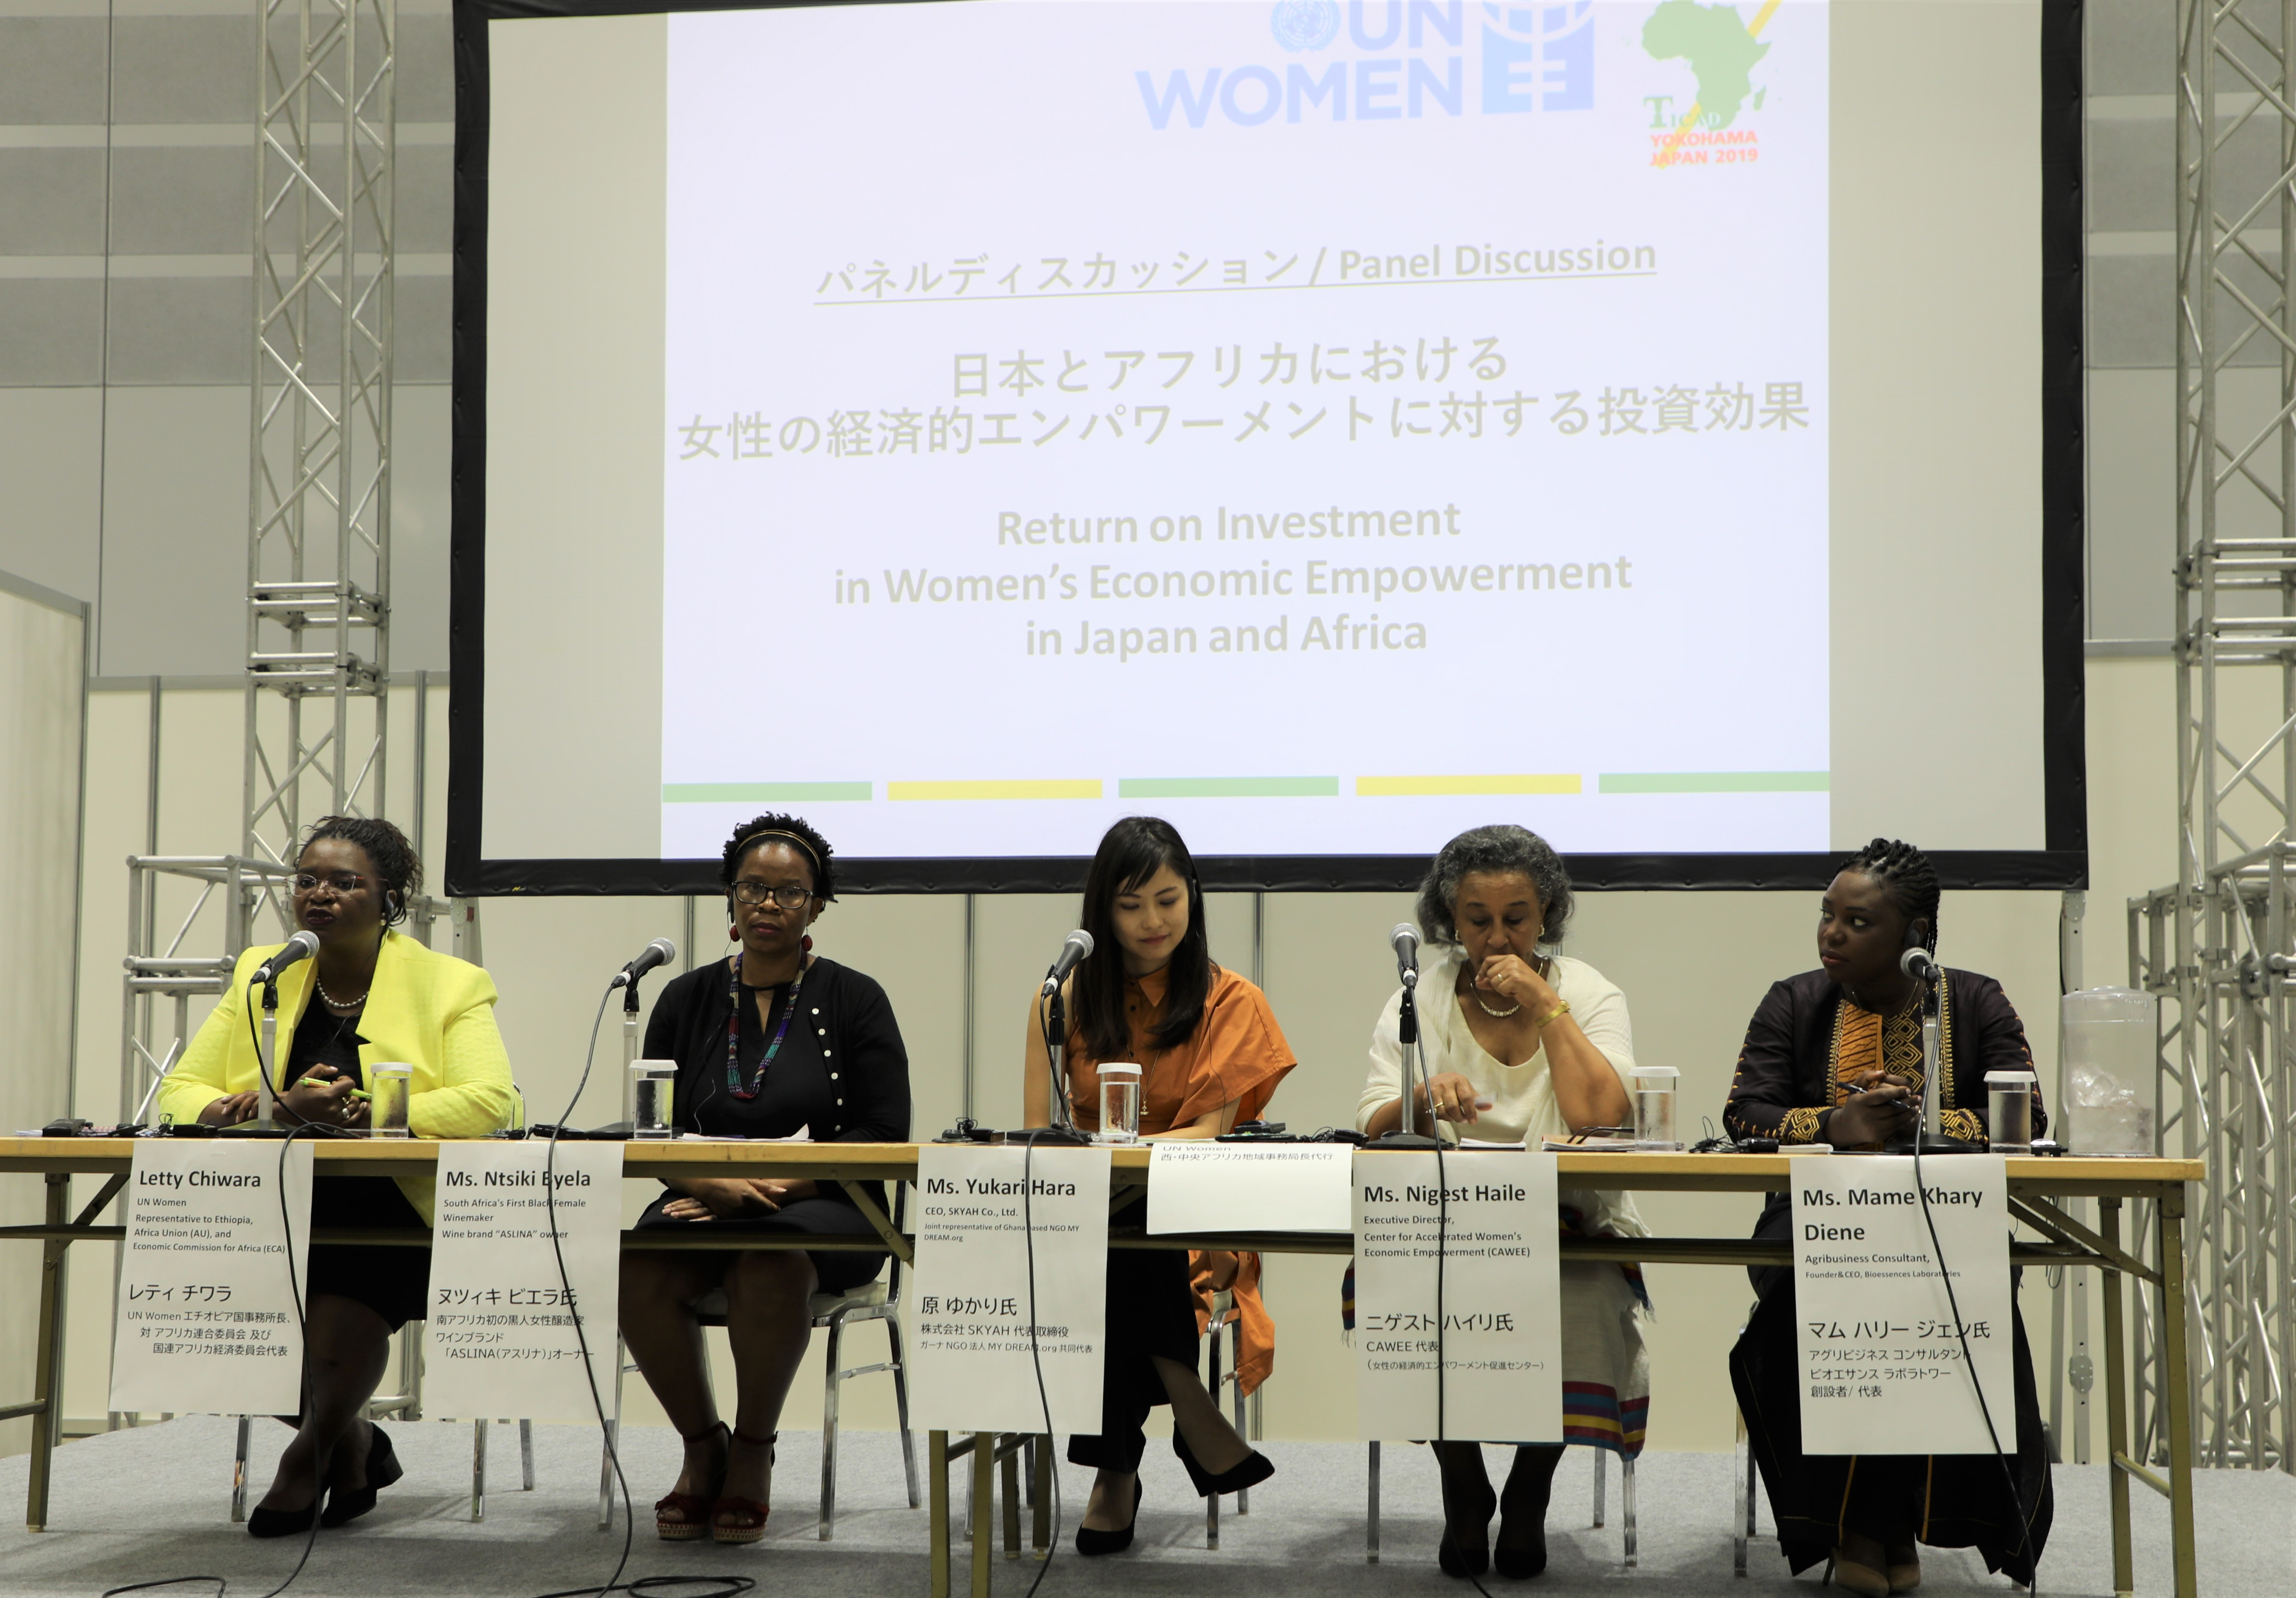 Panel women's economic empowerment brought together Mame Khary Diene, Nigest Haile, Yukari Hara and Ntsiki Biyela.